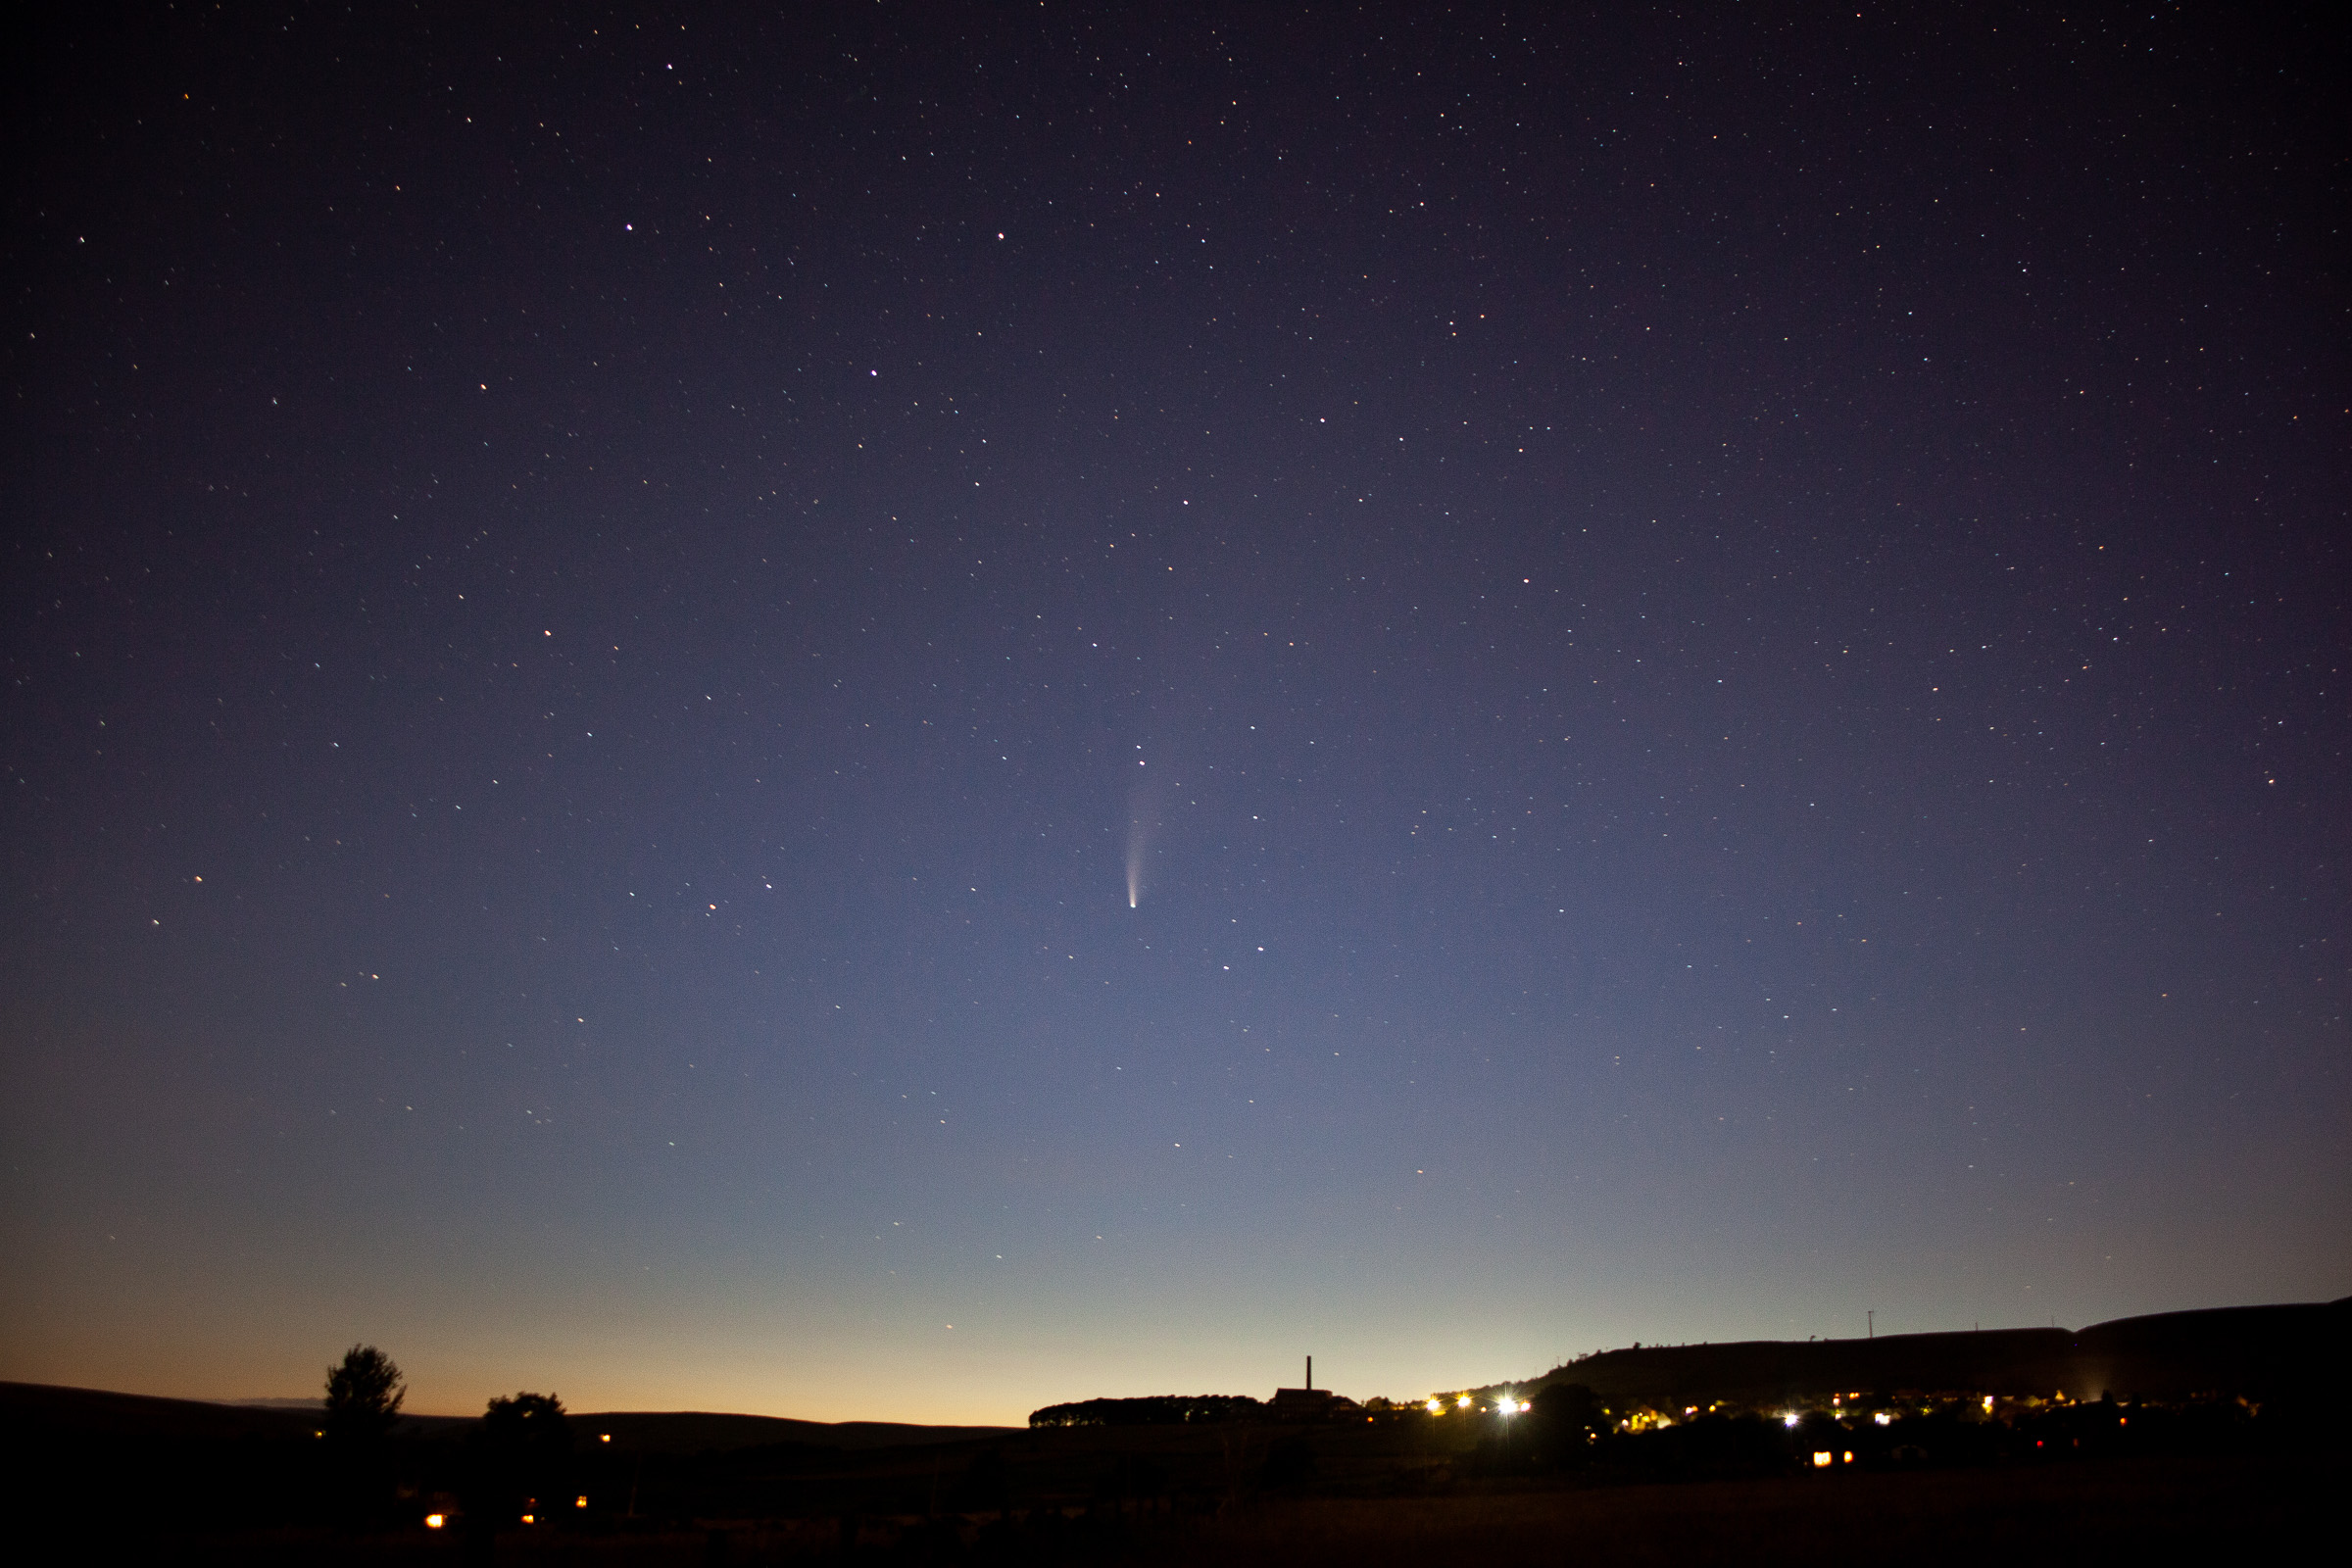 Comet Neowise over Old Town Mill, Hebden Bridge